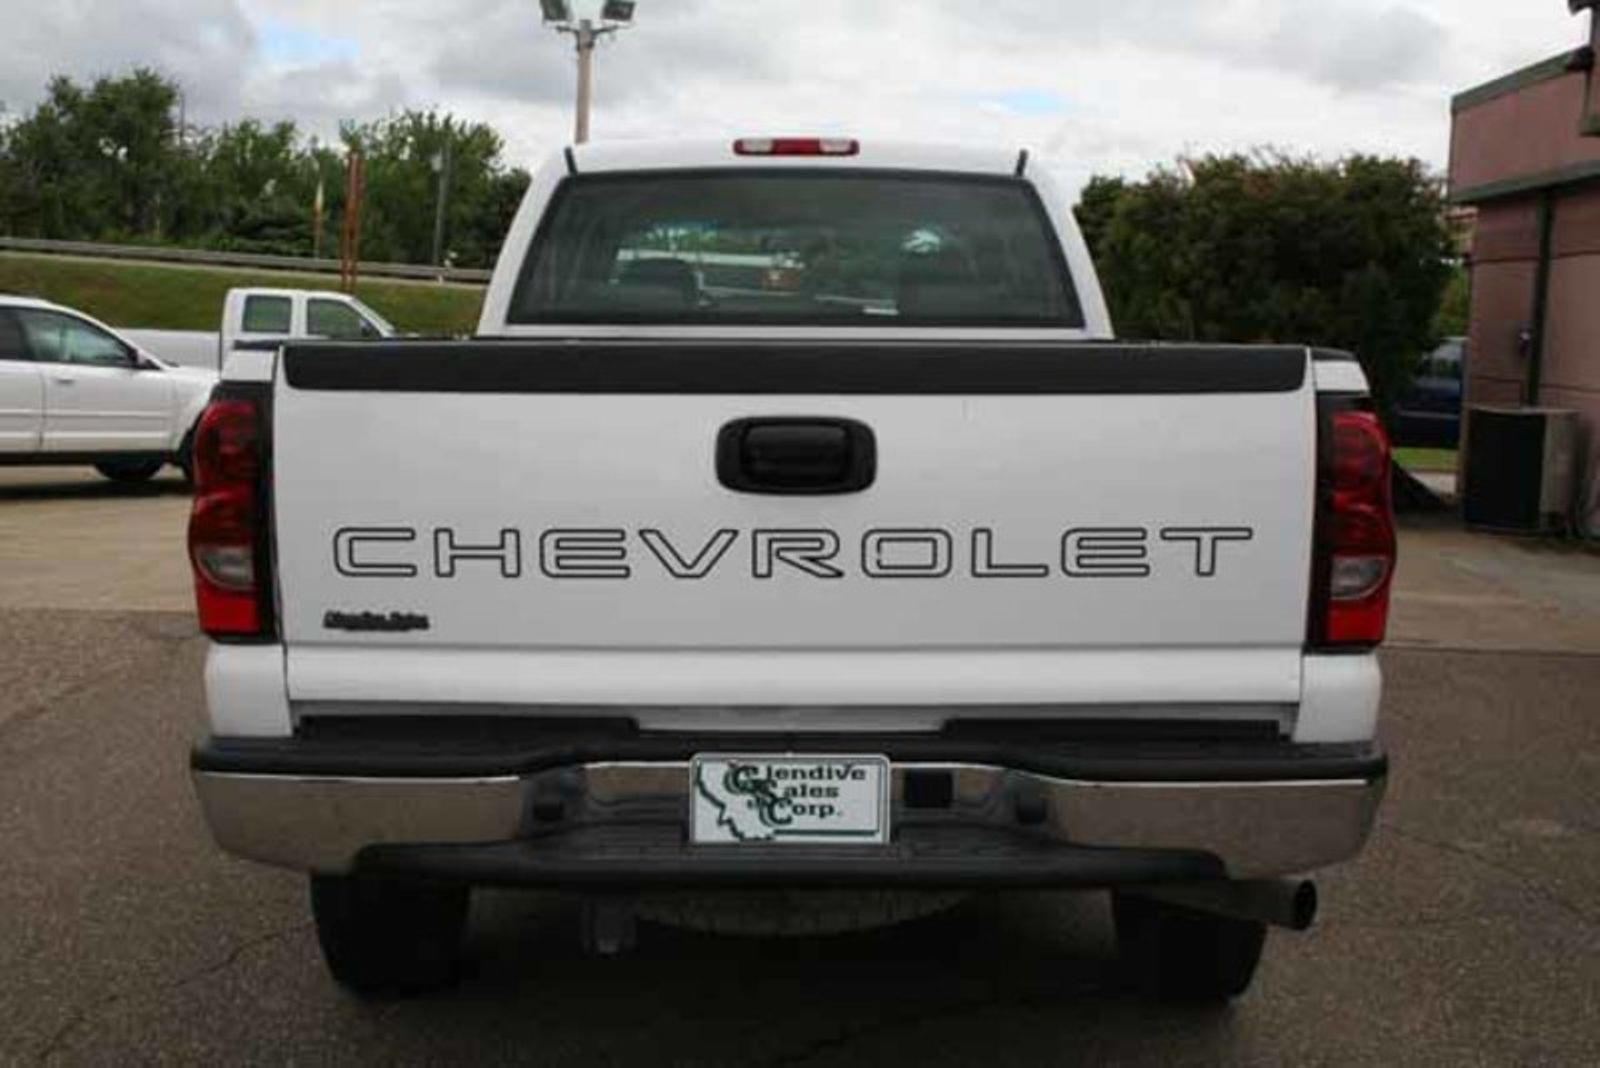 2003 chevy silverado 2500hd owners manual save our oceans rh saveouroceans info 2003 chevy 2500hd service manual 2003 chevy silverado 2500hd owners manual